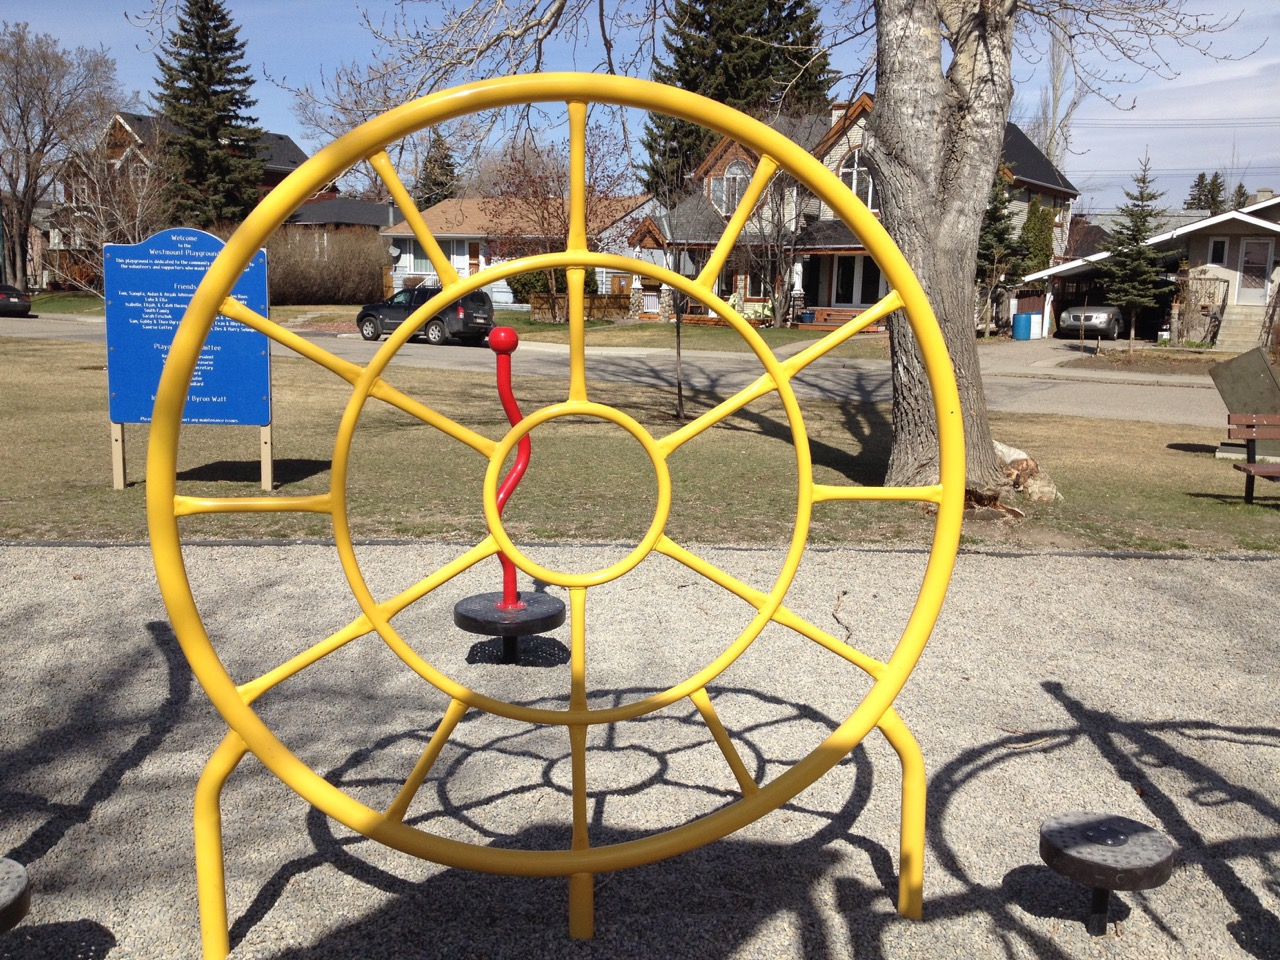 Colour and Shadow Fun, West Hillhurst, Calgary